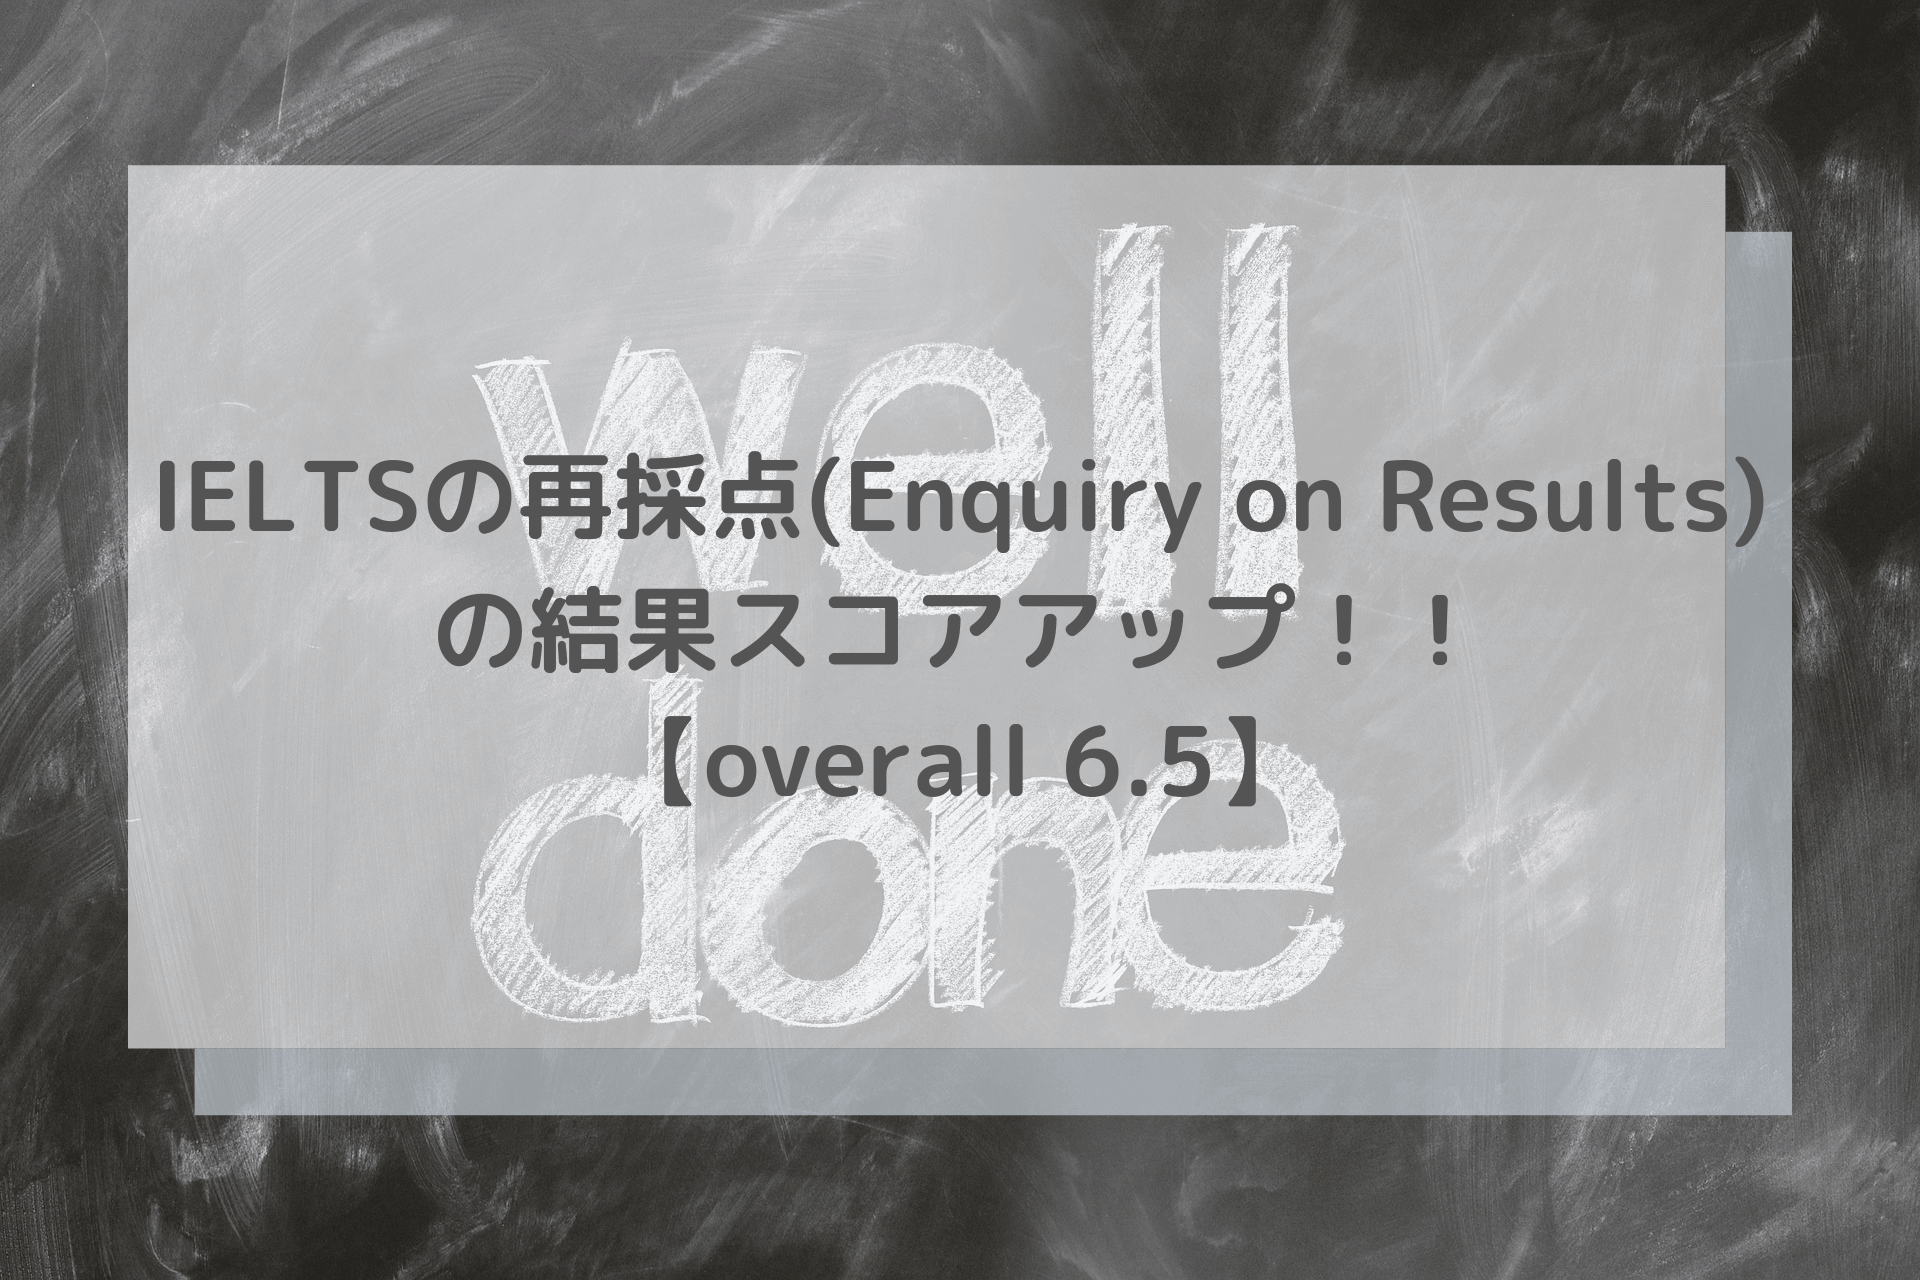 IELTSの再採点(Enquiry on Results)の結果スコアアップ【overall 6.5に】